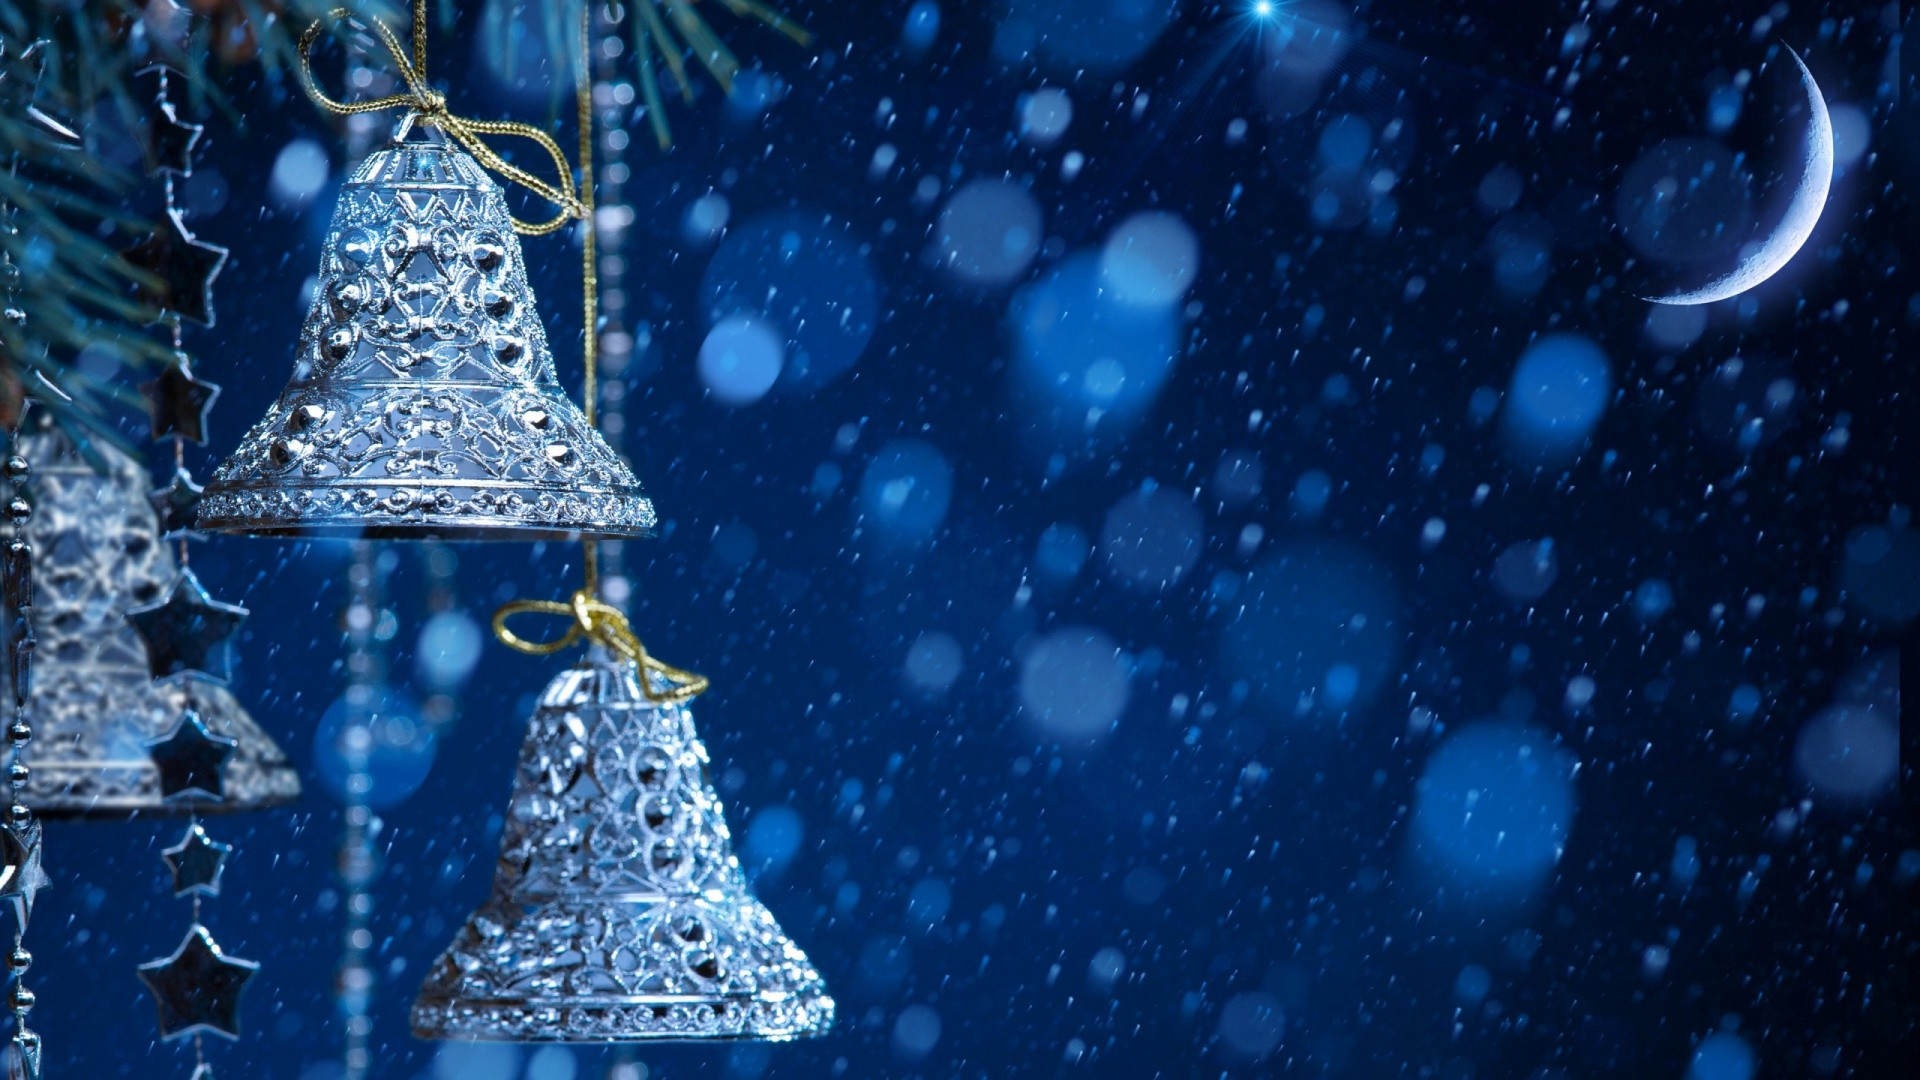 Silver Christmas Bells. How to set wallpaper on your desktop?  Click the download link from above and set the wallpaper on the desktop  from your …